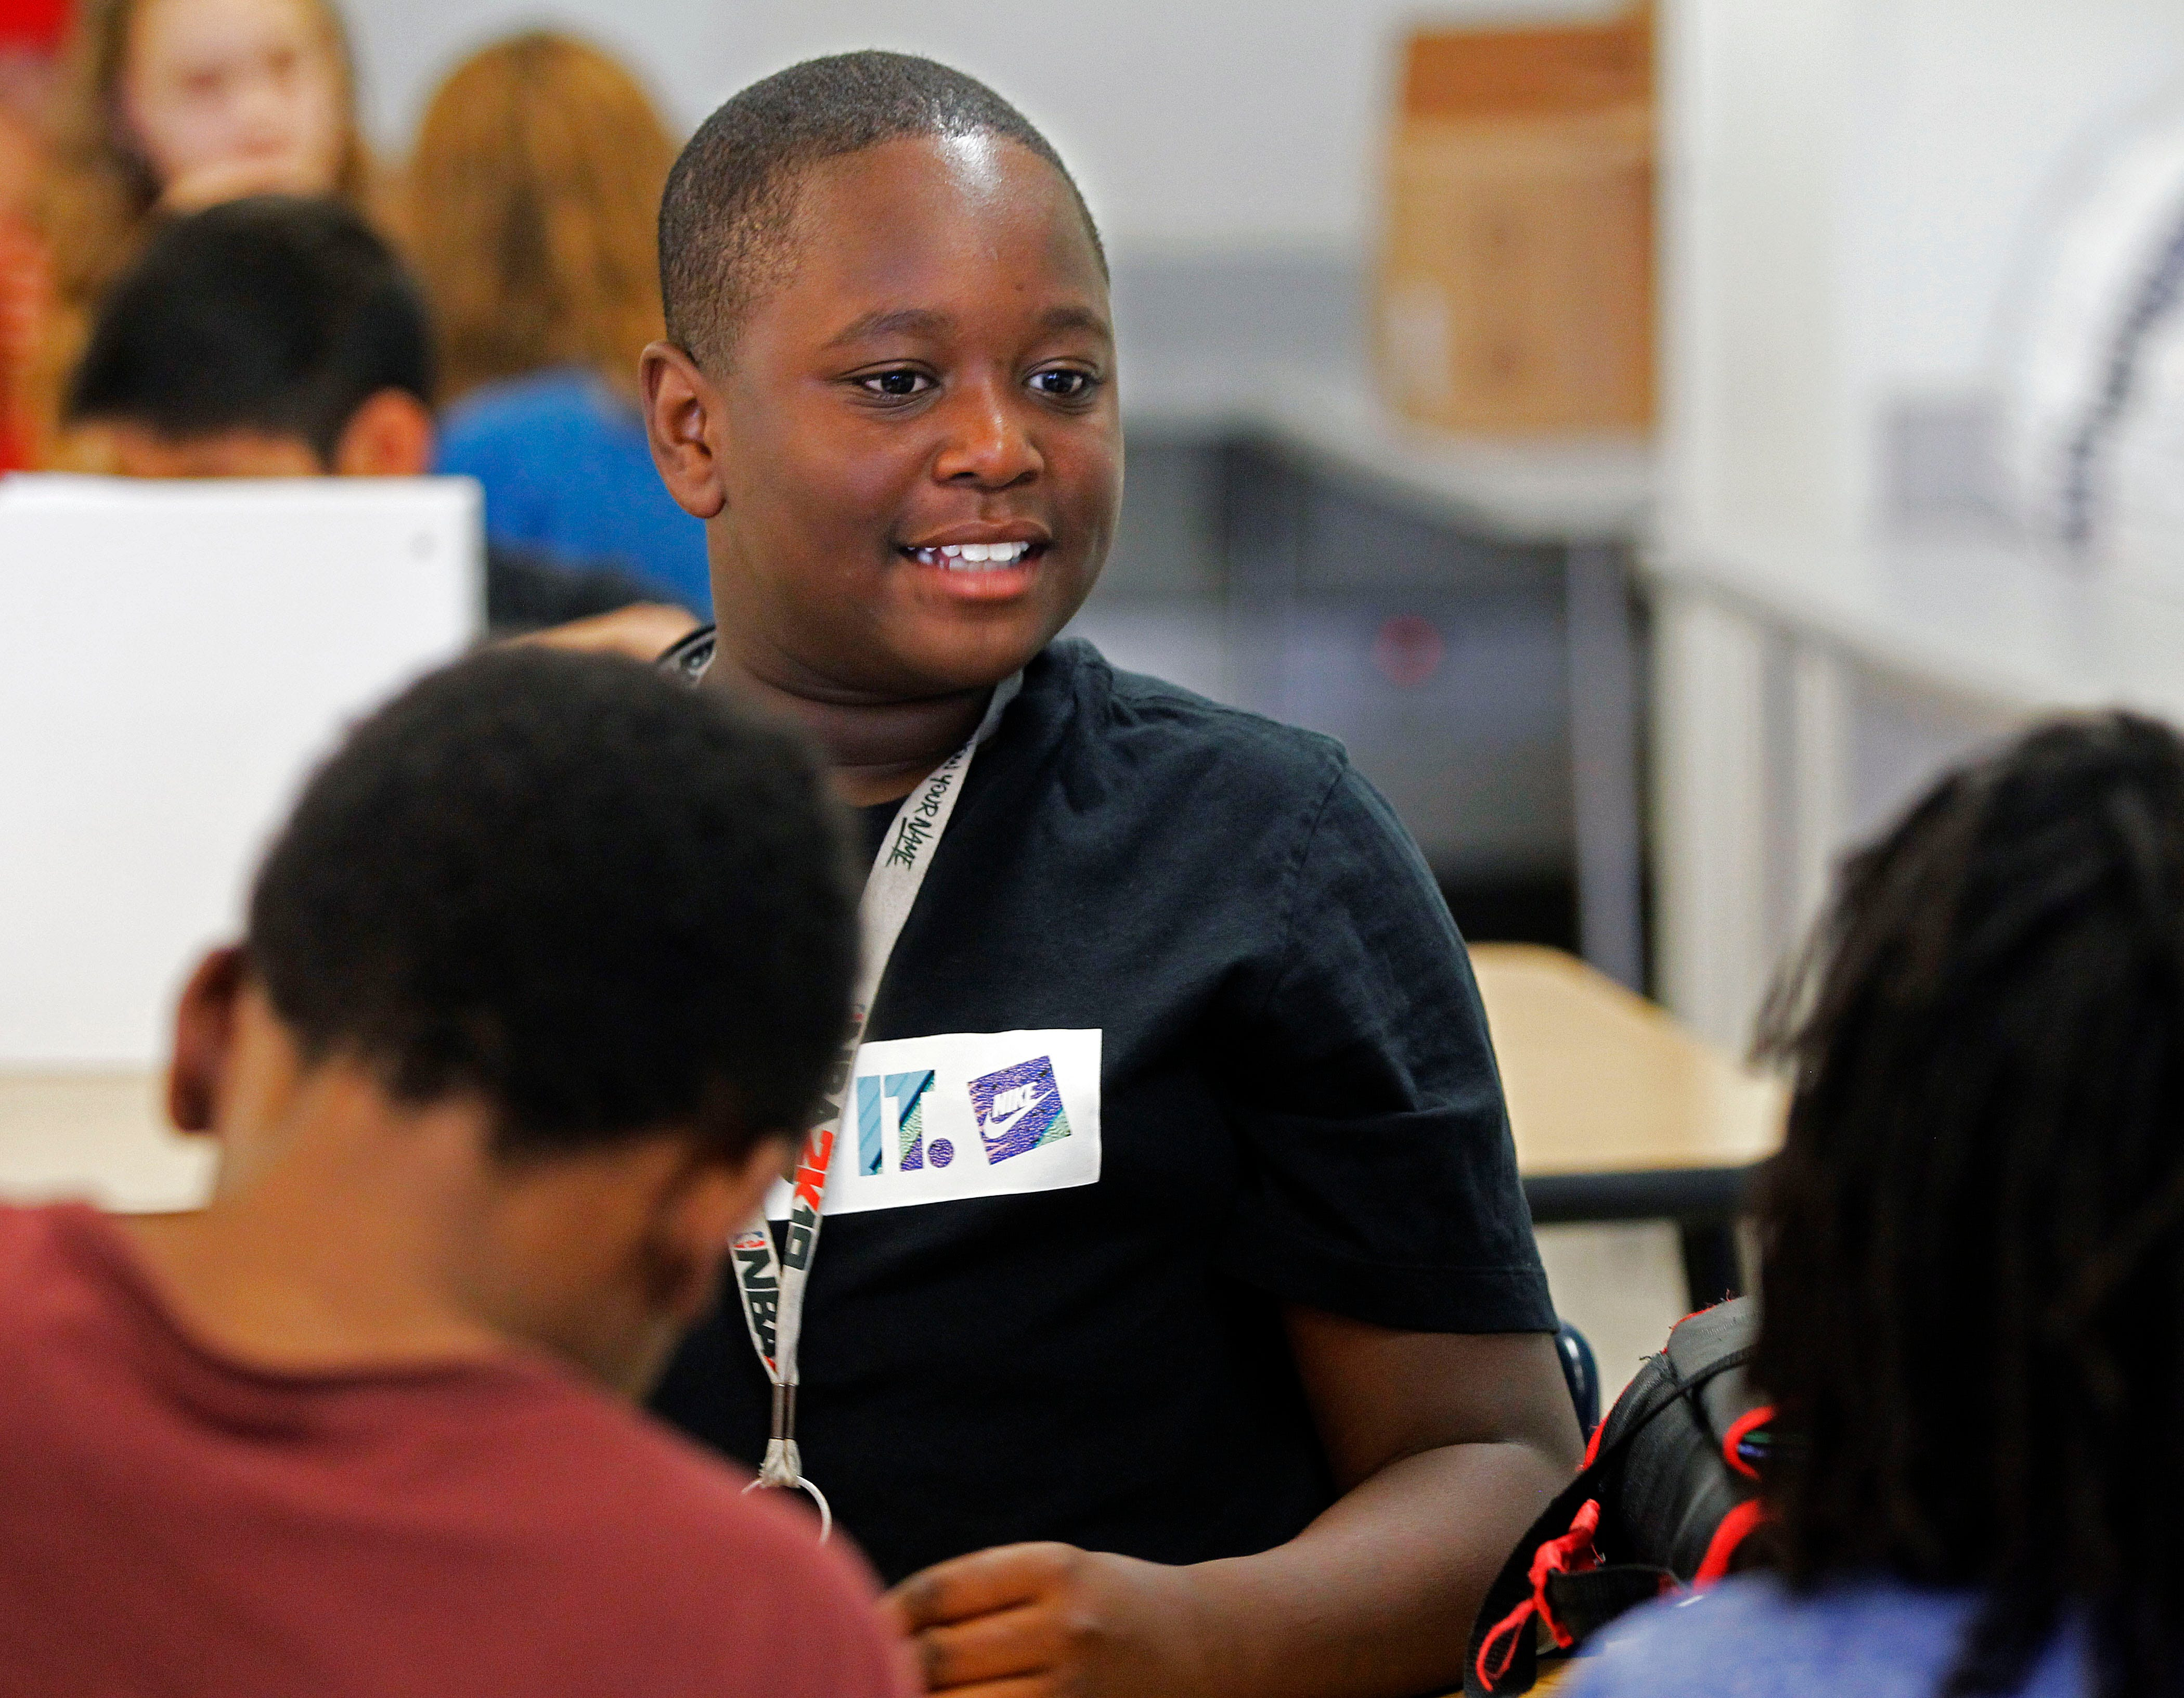 Matthias Jeffrie, 12, in class at Capitol Hill Magnet on Monday, Sept. 30, 2019 in St. Paul, Minneapolis.